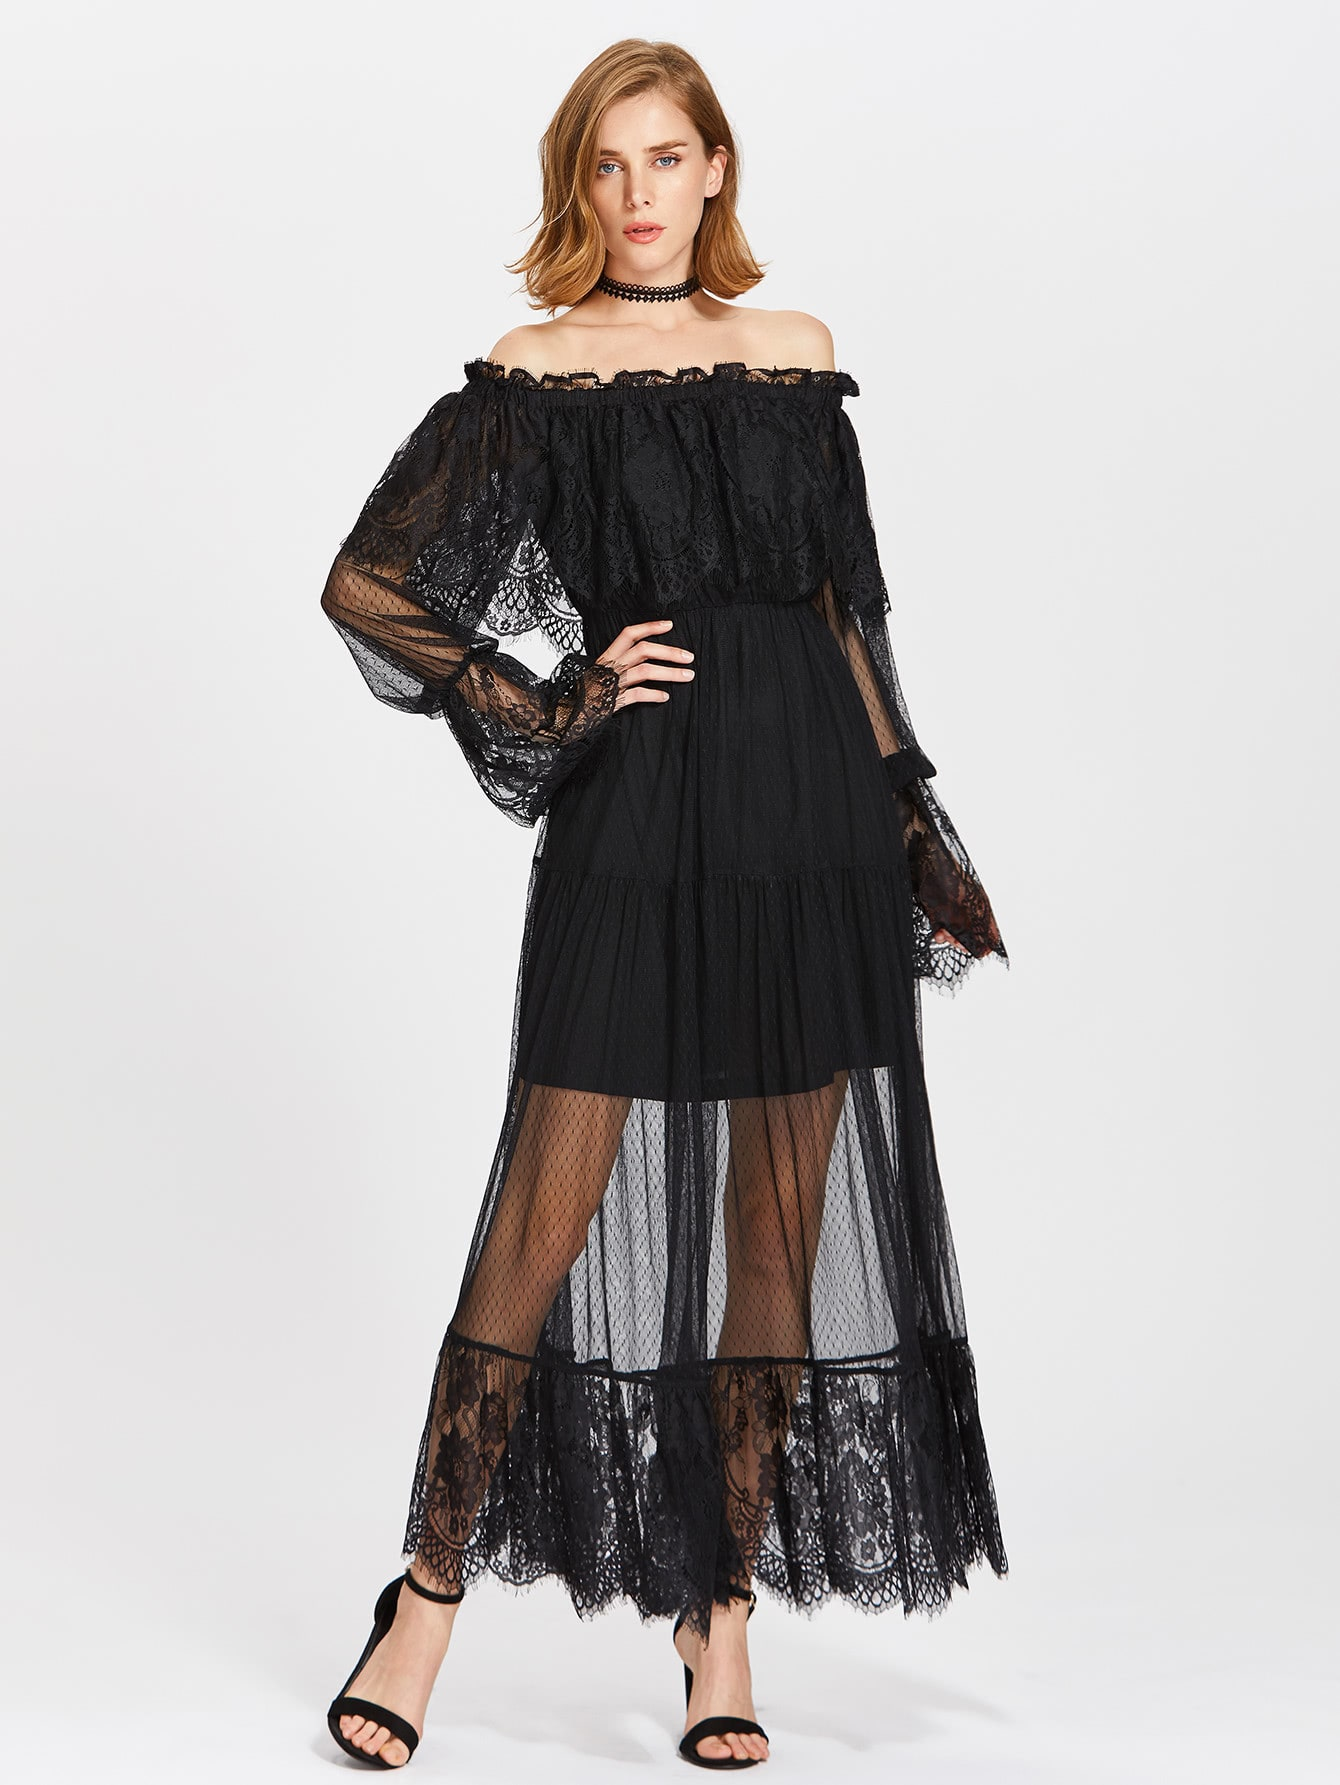 a427033713a Frill Off Shoulder Lace Overlay Tiered Dress